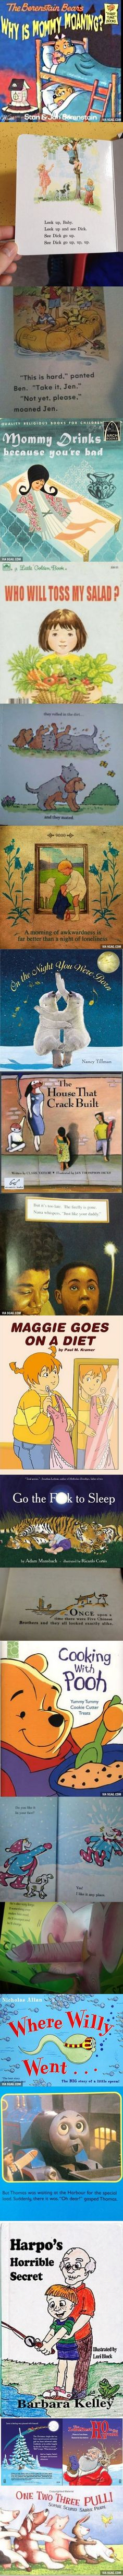 21 Horribly Inappropriate Books To Traumatize Your Children  - I died!!!